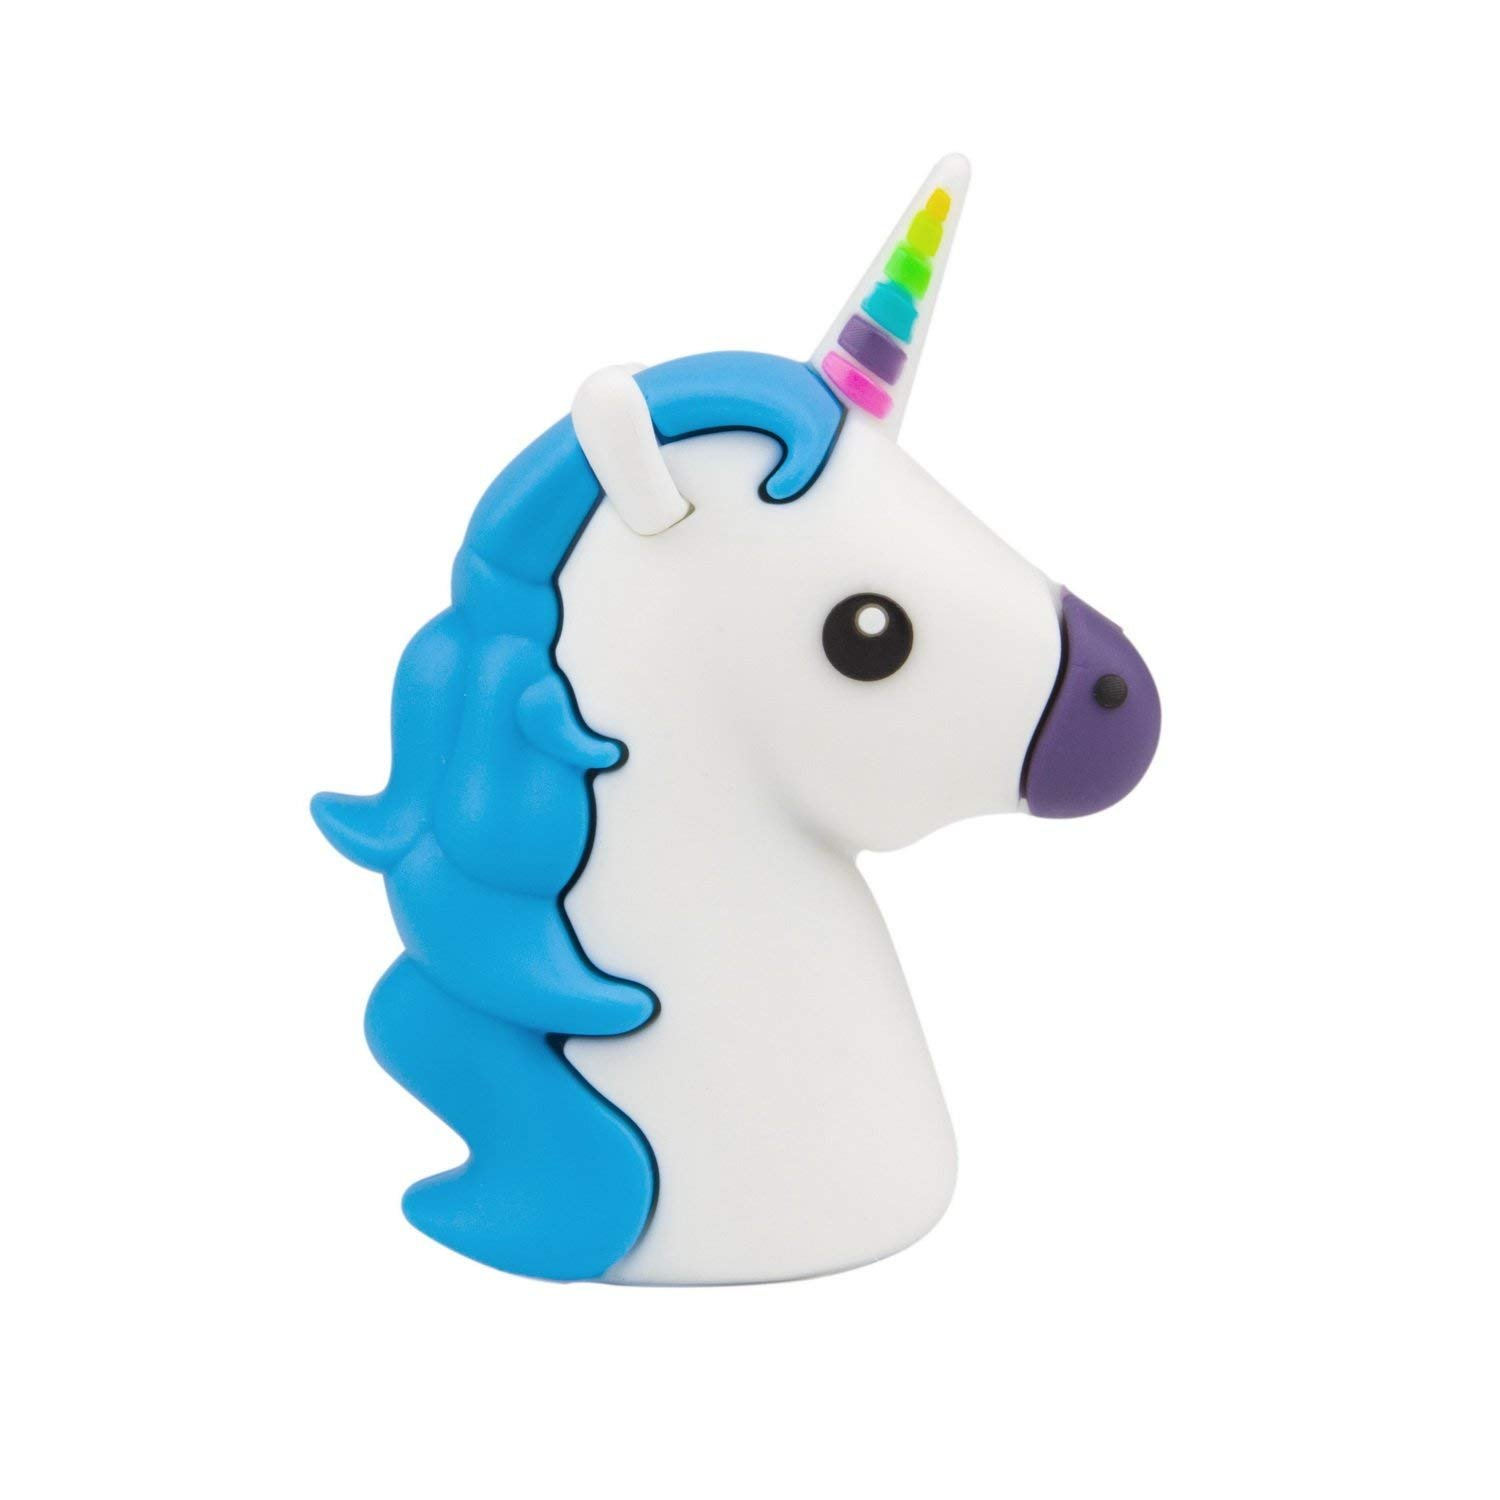 Lightweight Mini Unicorn Emoji Powerbank 2600mah Power Bank External Battery Charger Unicorn Cartoon Portable Backup Pack Compatible With iPhone And Android Smart Phone (Mini Blue Unicorn)